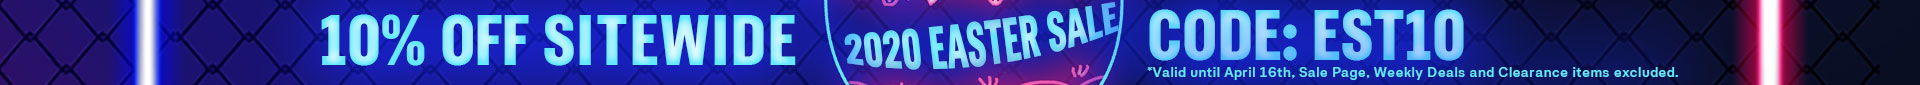 2020 easter sale